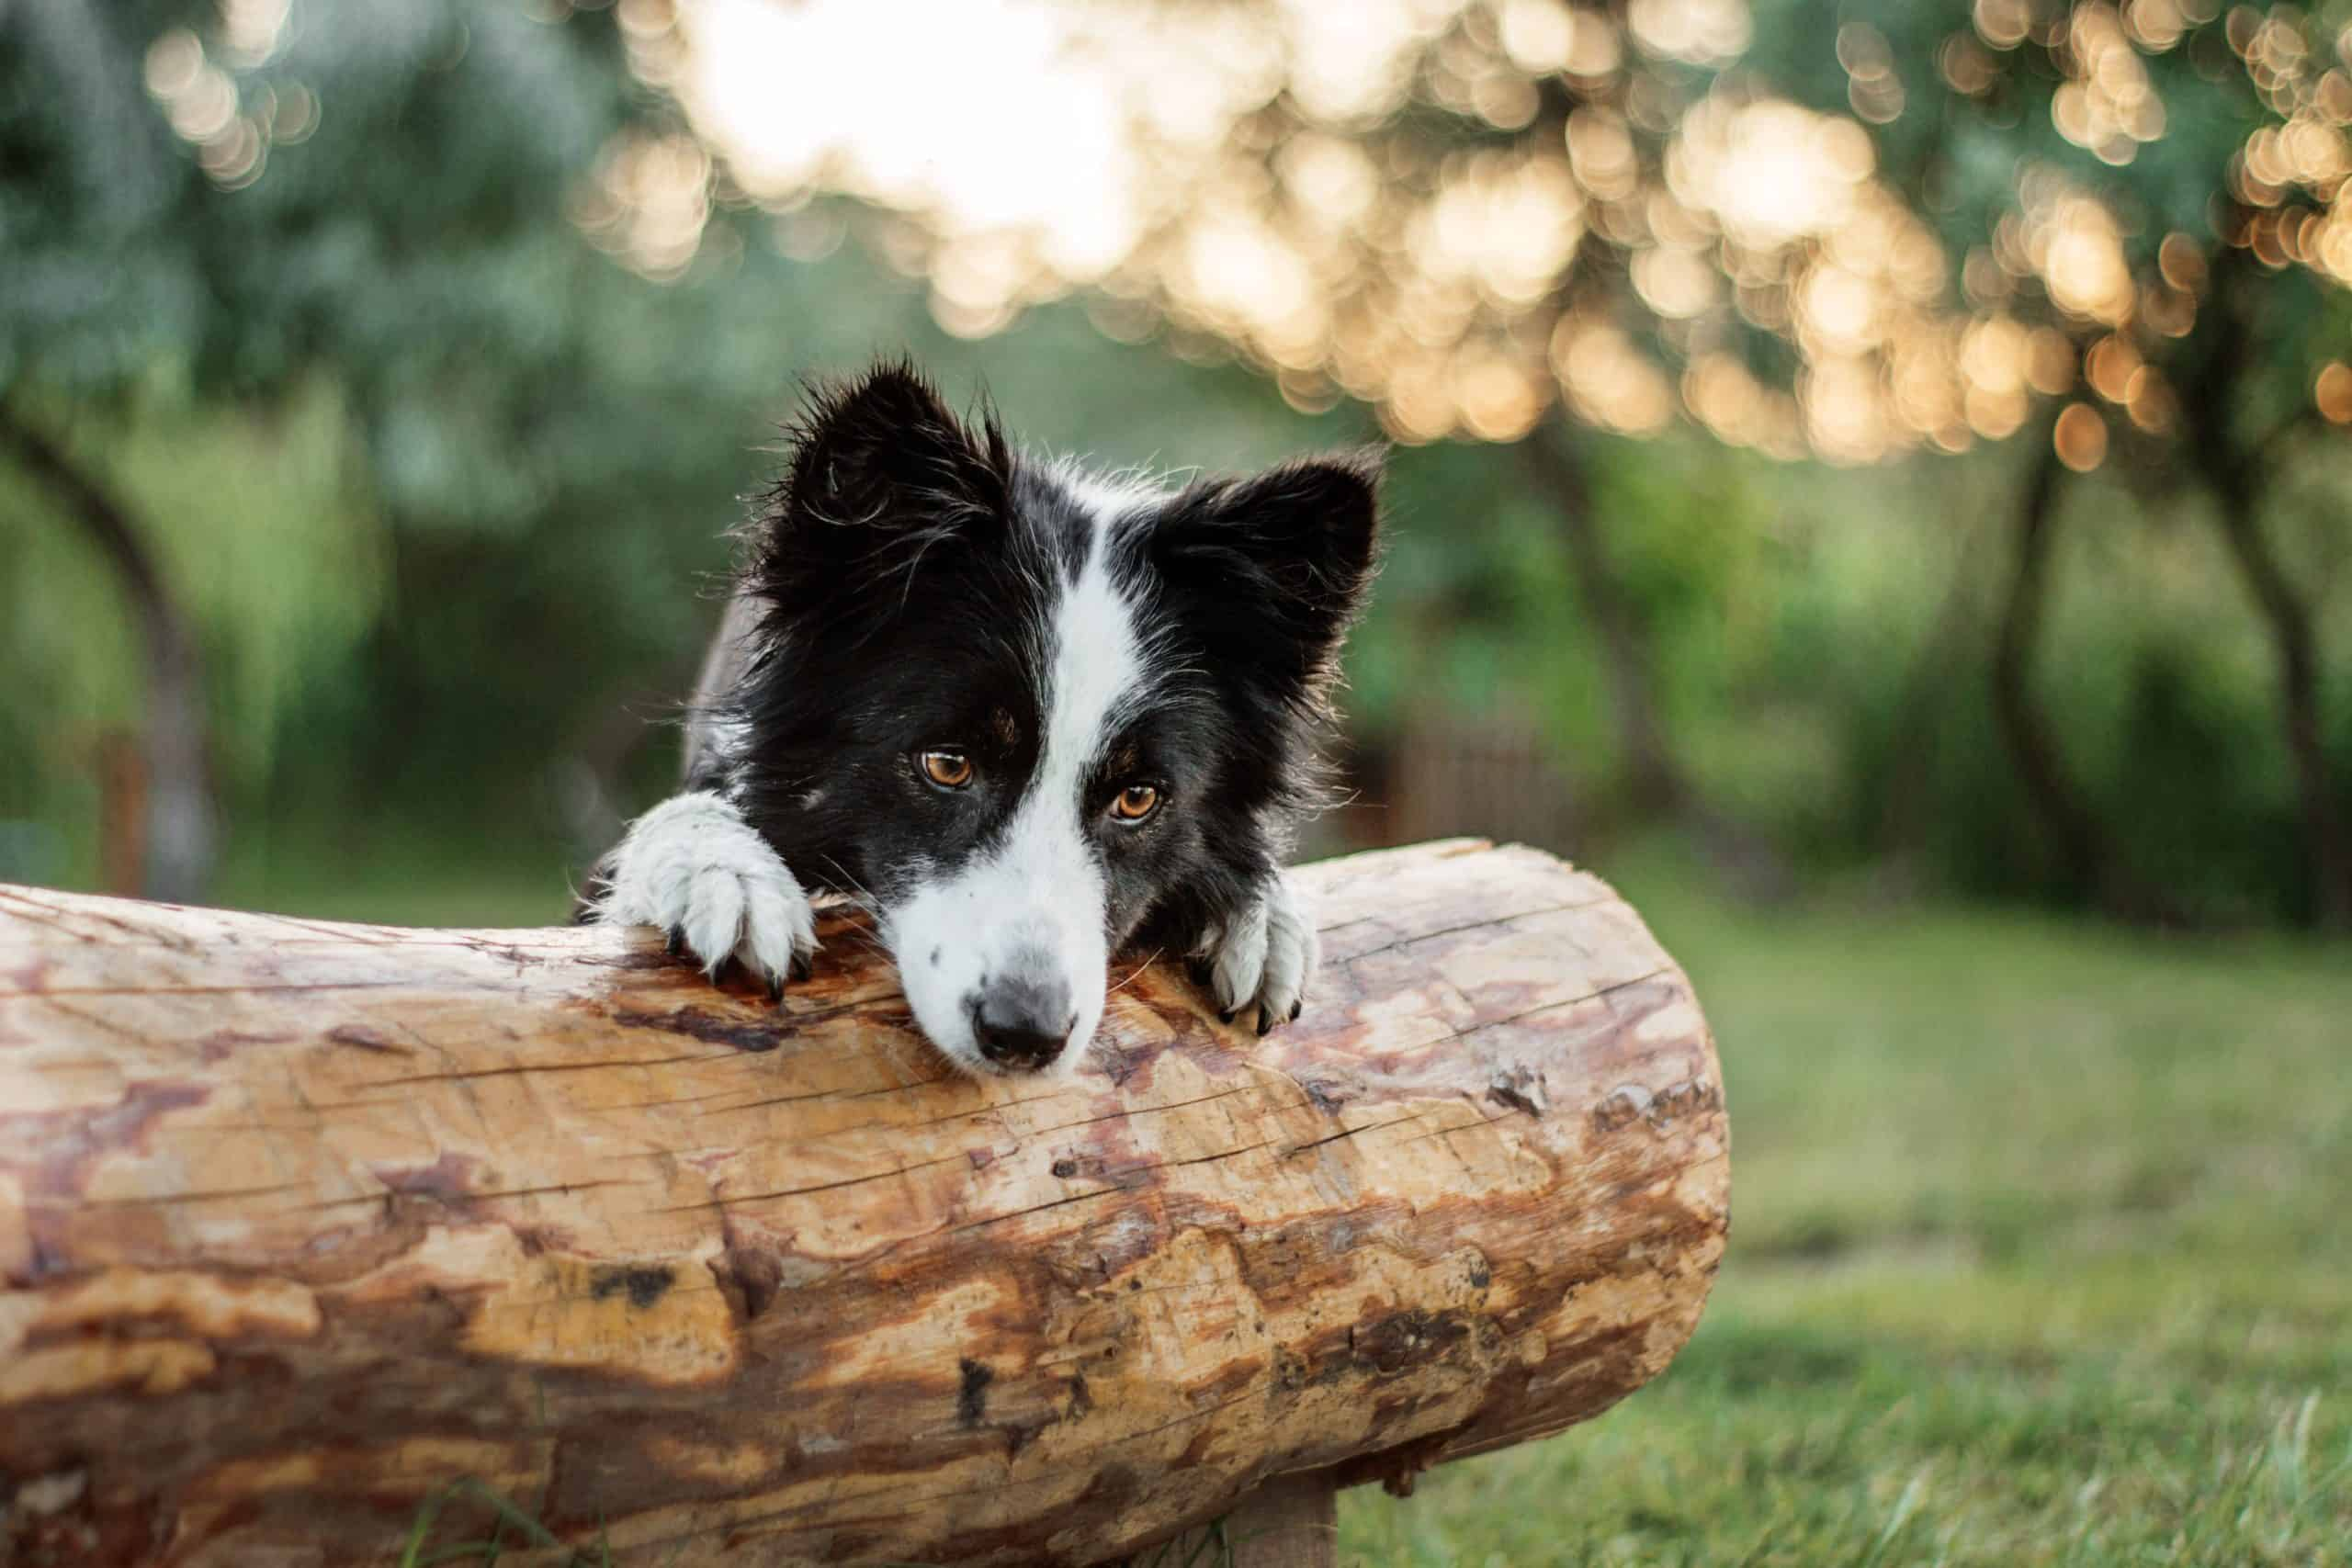 Border Collie leans against log out in nature. Dogs commonly contract leptospirosis. Catching the signs of leptospirosis in dogs early leads to prompt treatment and better recovery odds.